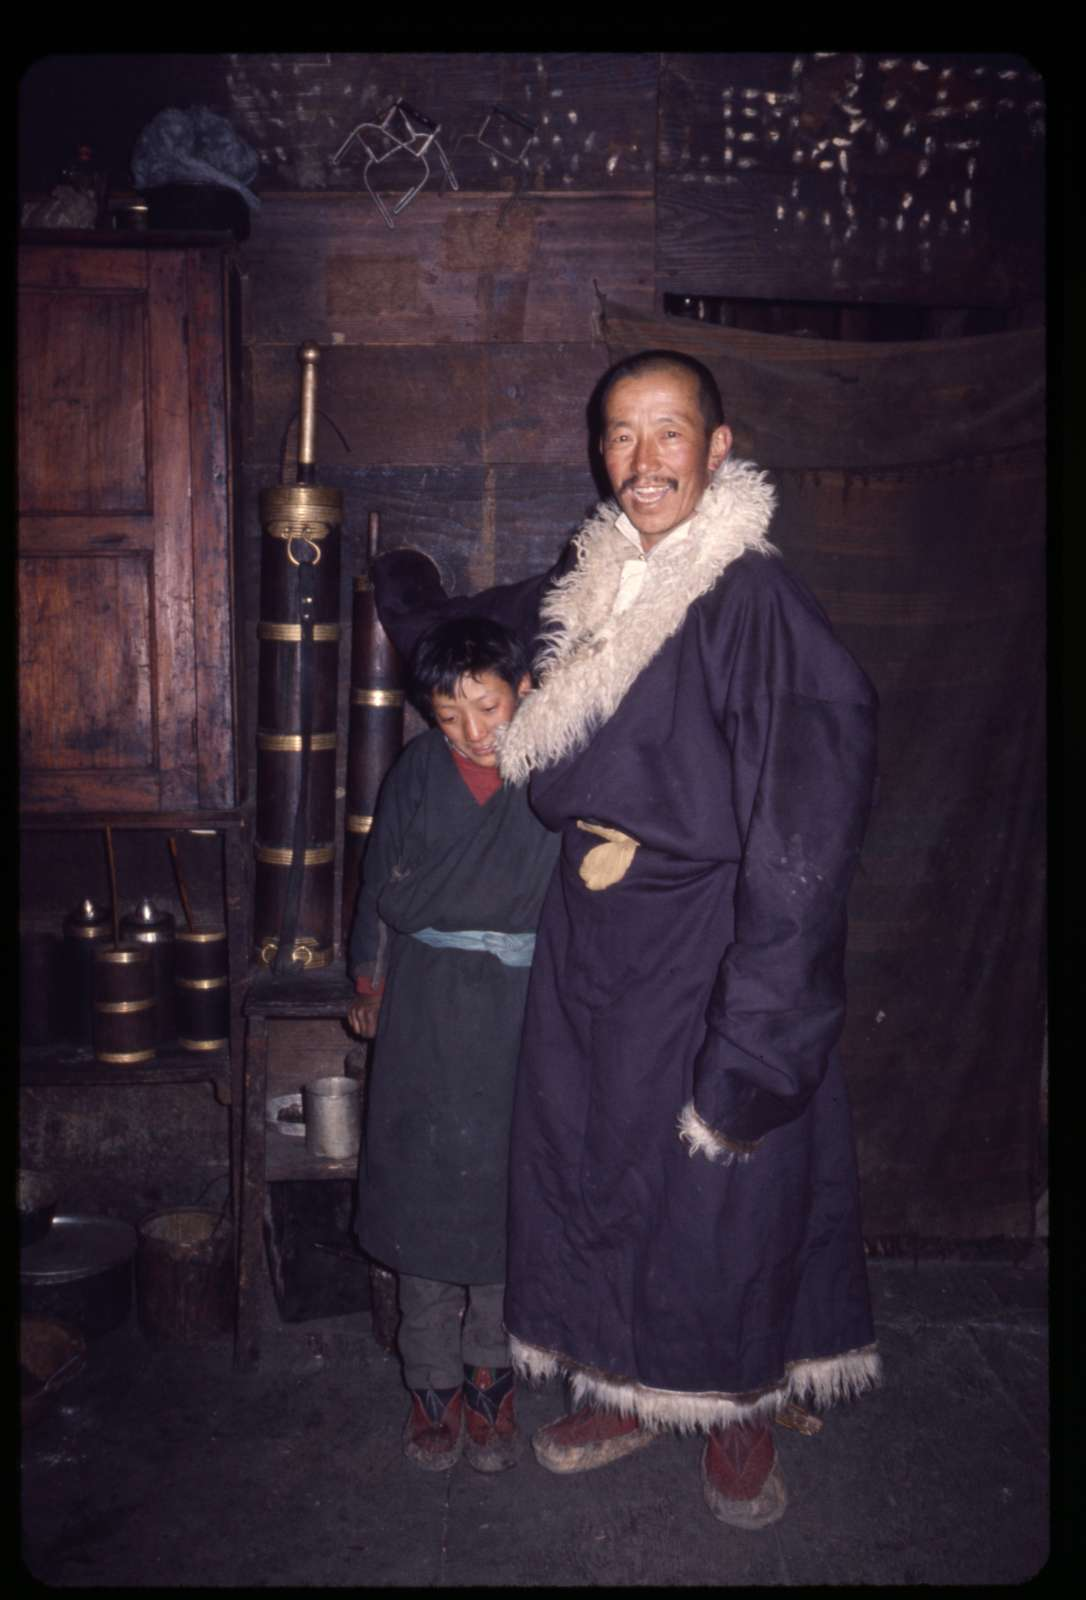 [Rinchen Namgyal Lachungpa and boy standing next to yak-butter churns, Lachung, Sikkim]